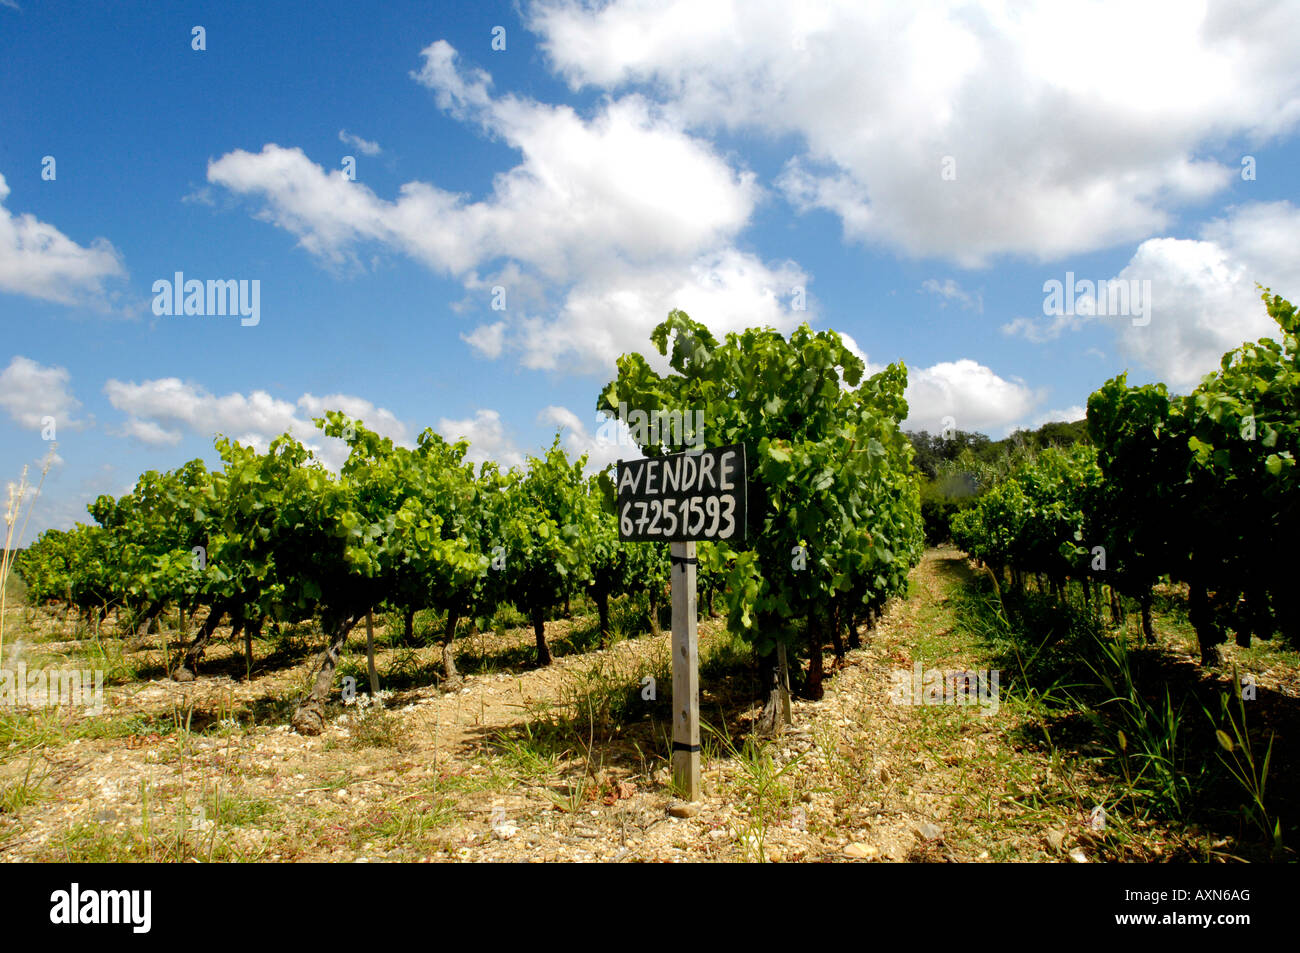 rows of vines in rural french vineyards for sale with rustic sign near, pezenas, languedoc, france - Stock Image